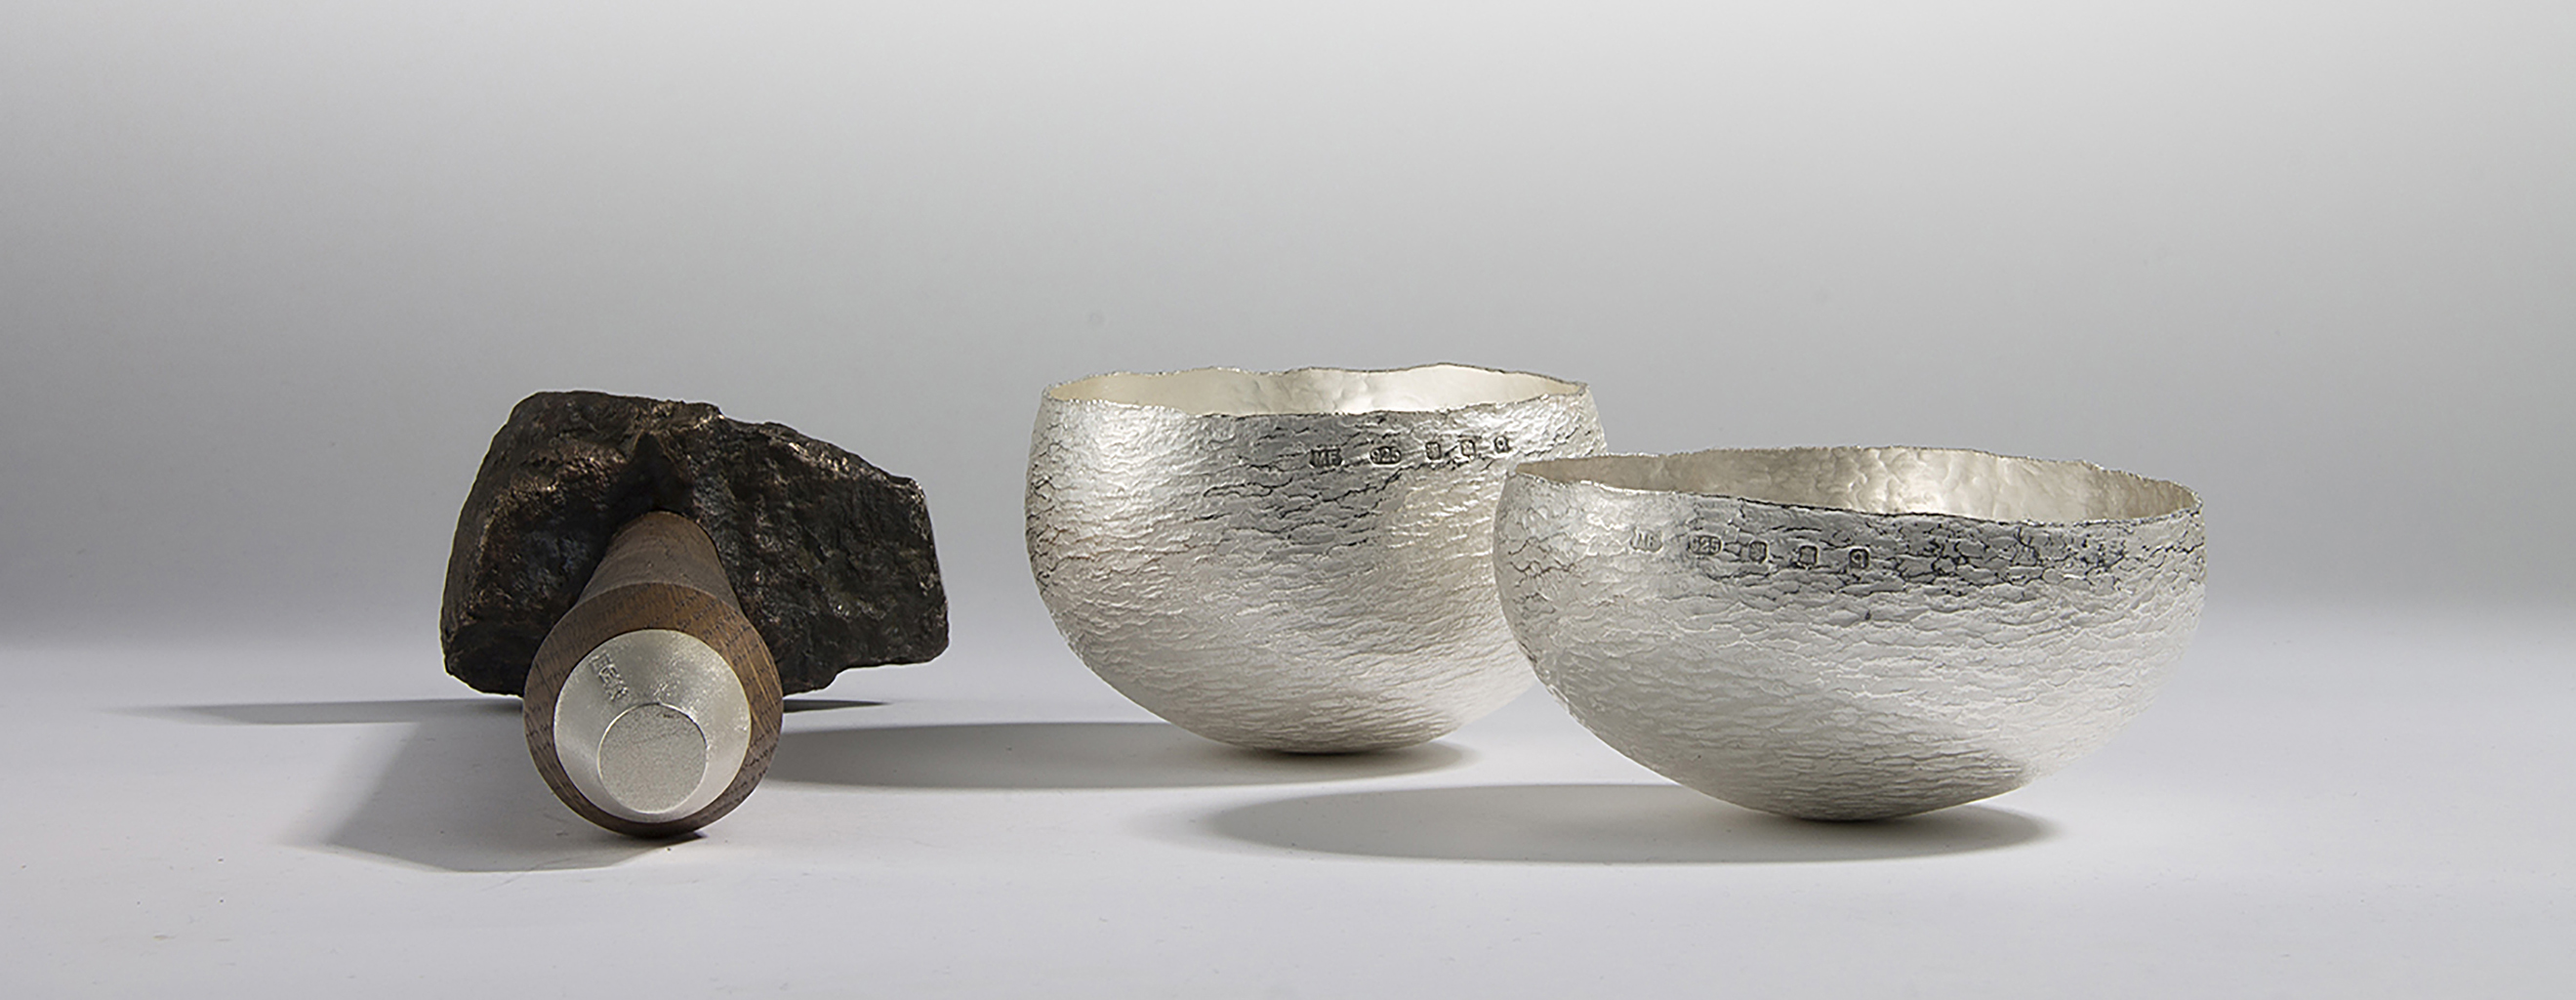 Dunkeld Hammer and Bowl Set